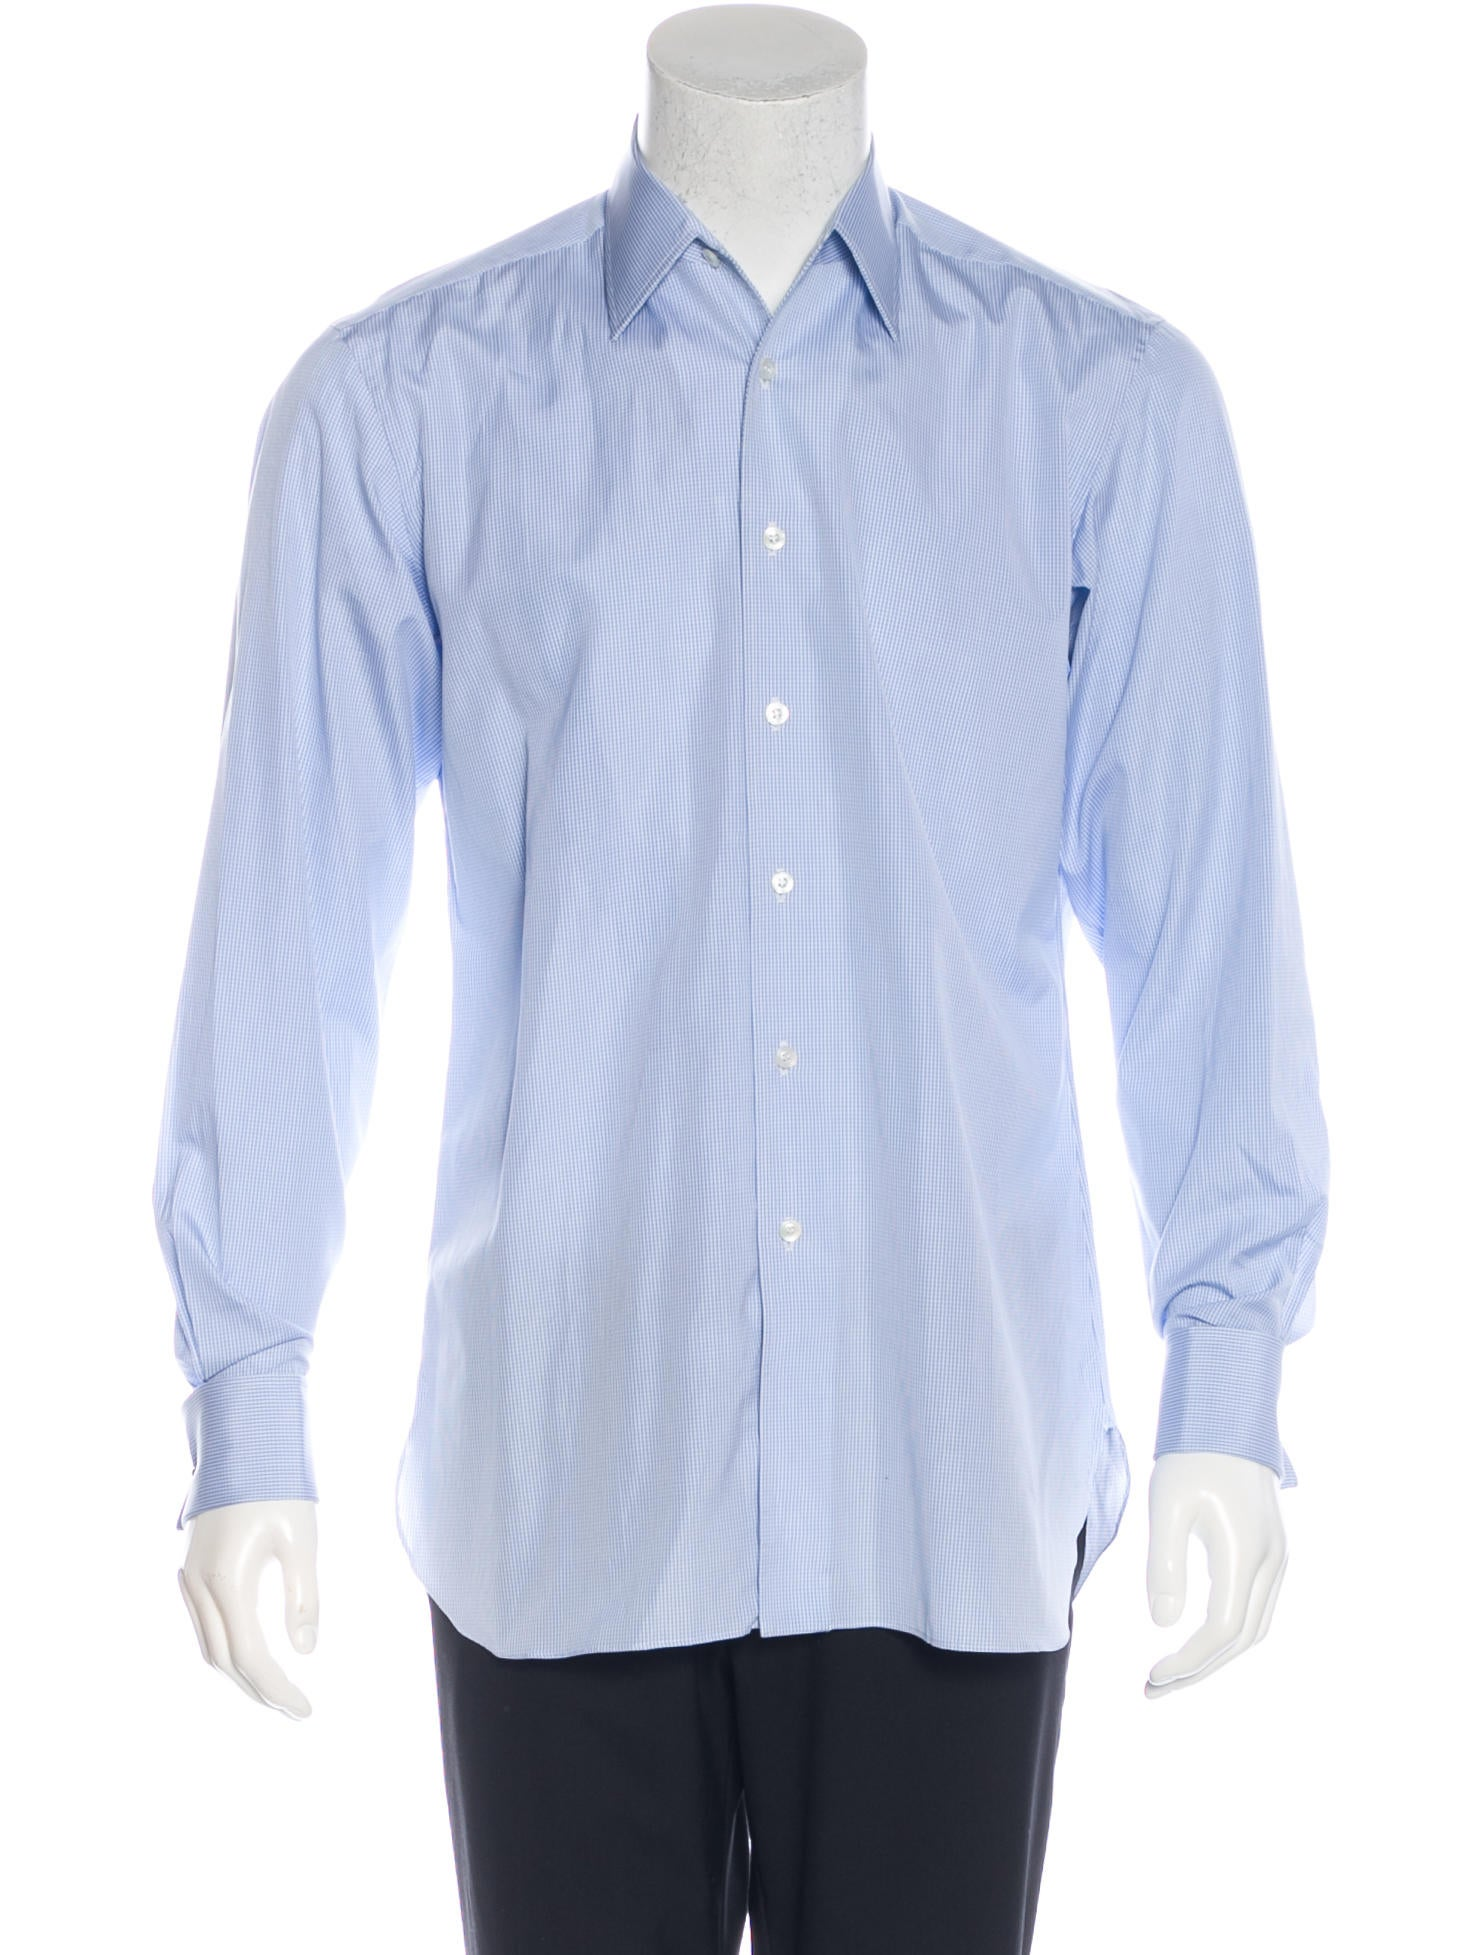 Charvet gingham french cuff shirt clothing wchrv20510 for What is a french cuff shirt